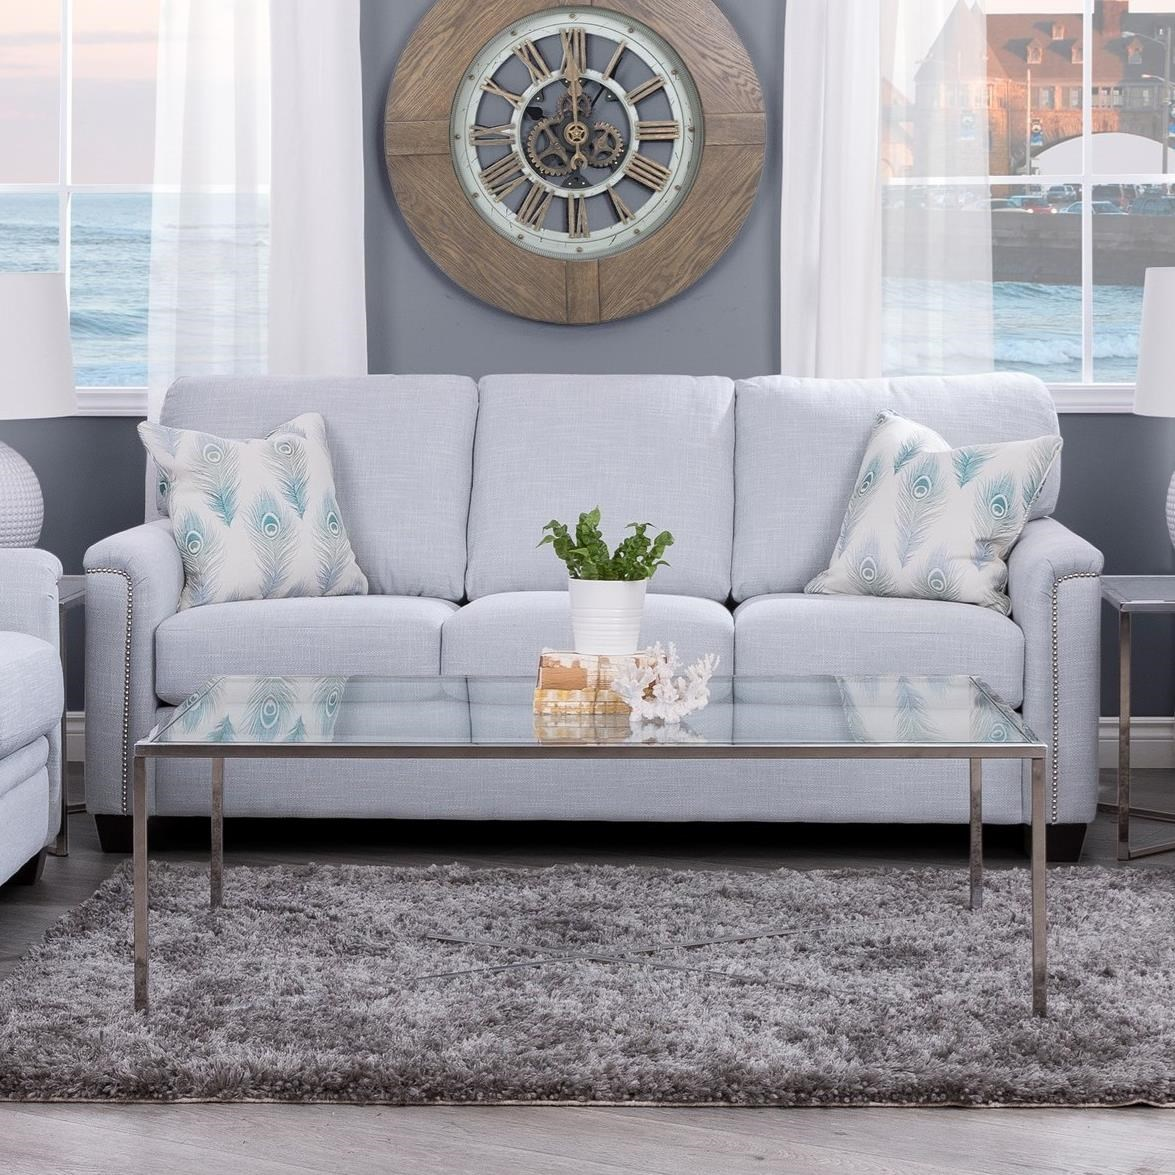 2877 Sofa by Decor-Rest at Rooms for Less